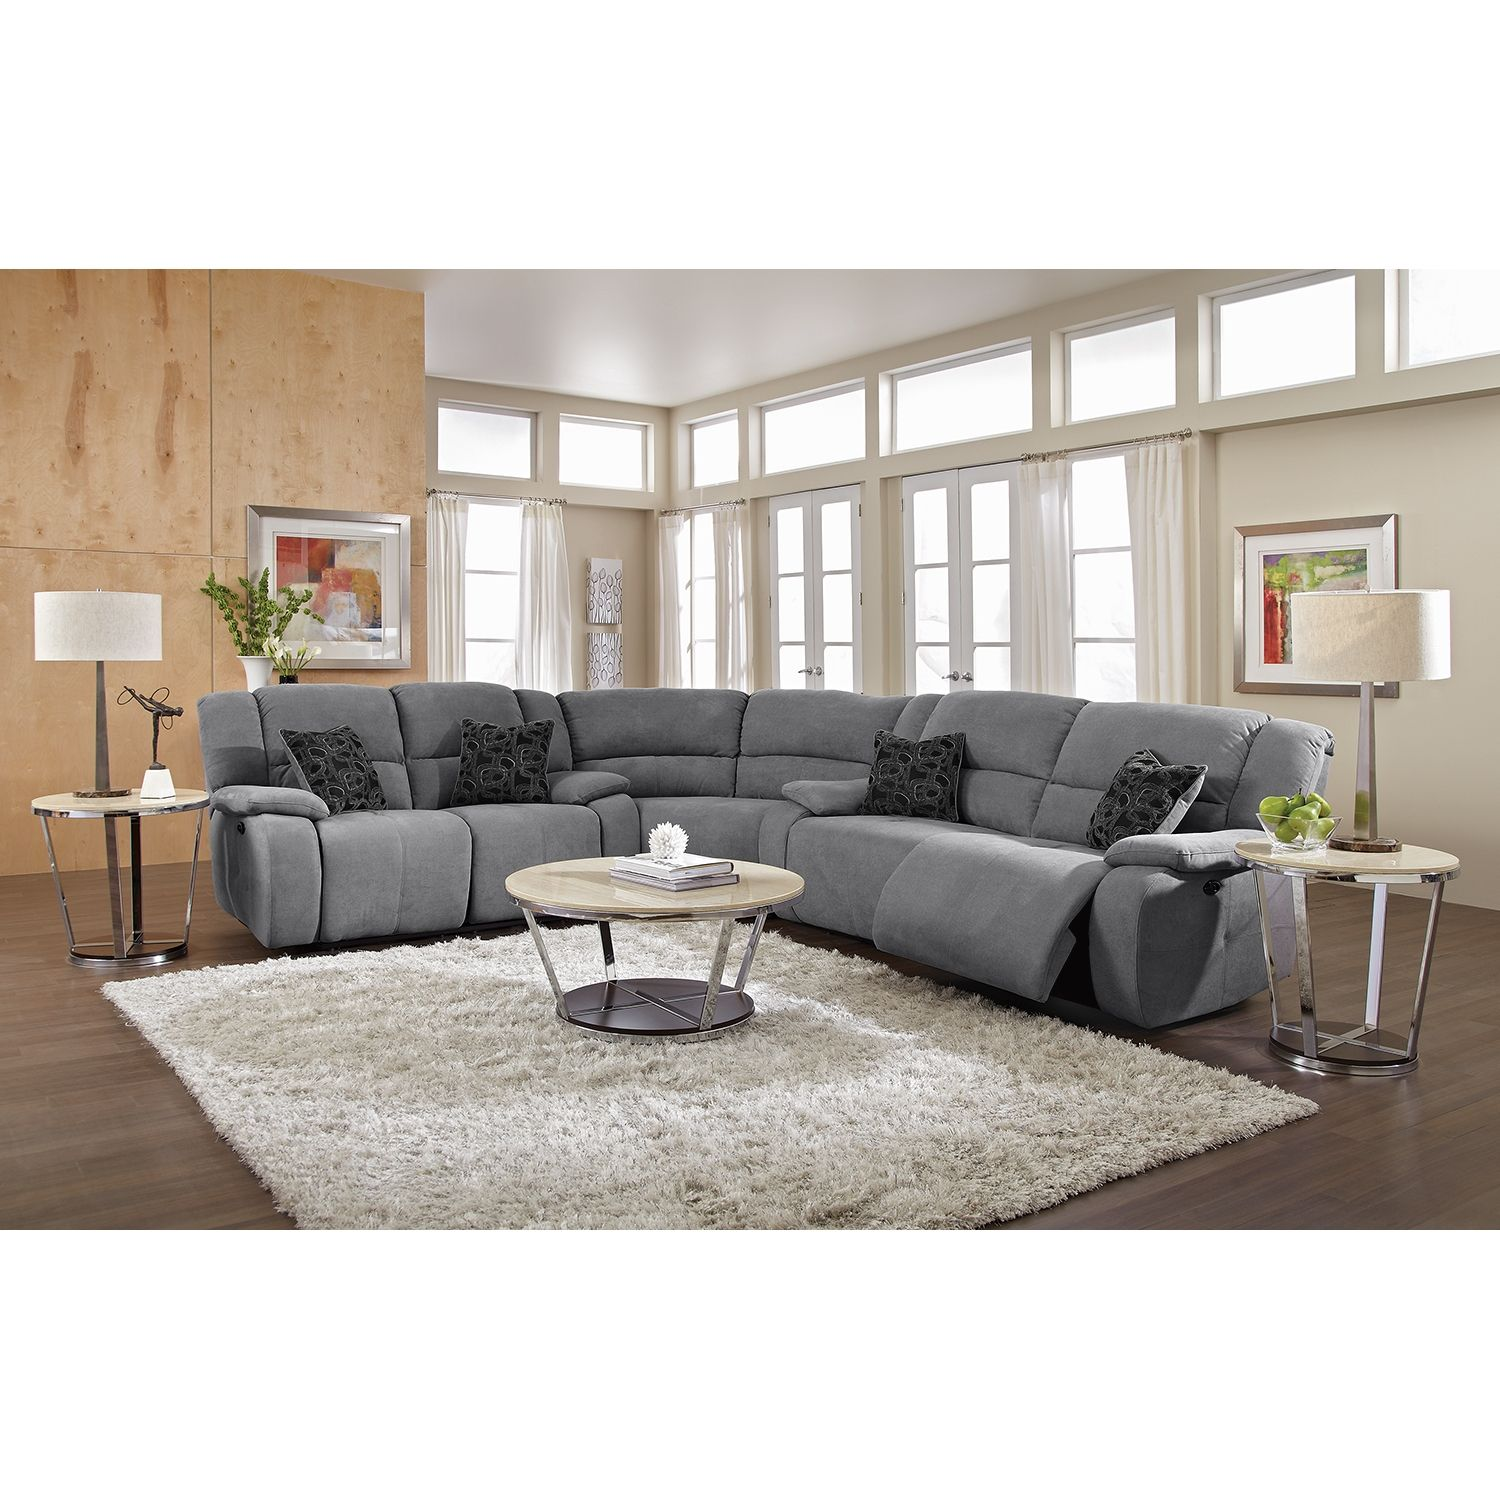 Love this couch gray is awesome future living room for Living room ideas with 3 sofas